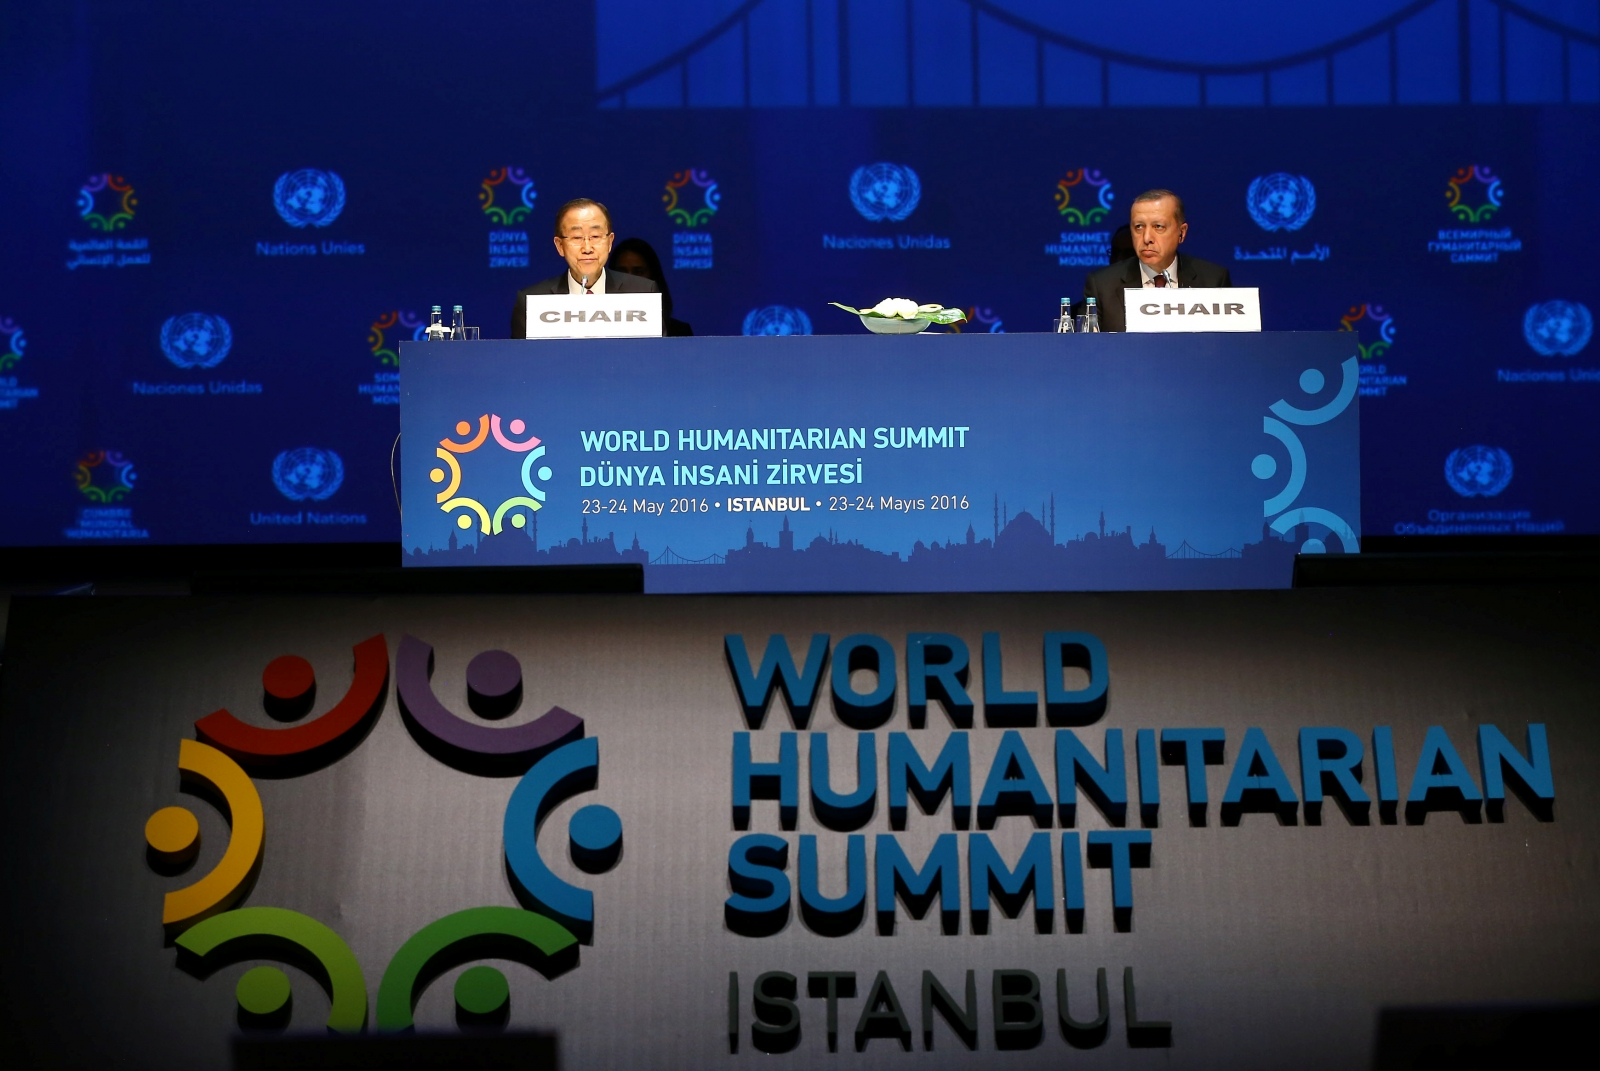 World Humanitarian Summit: £2.7bn for education in warzone areas